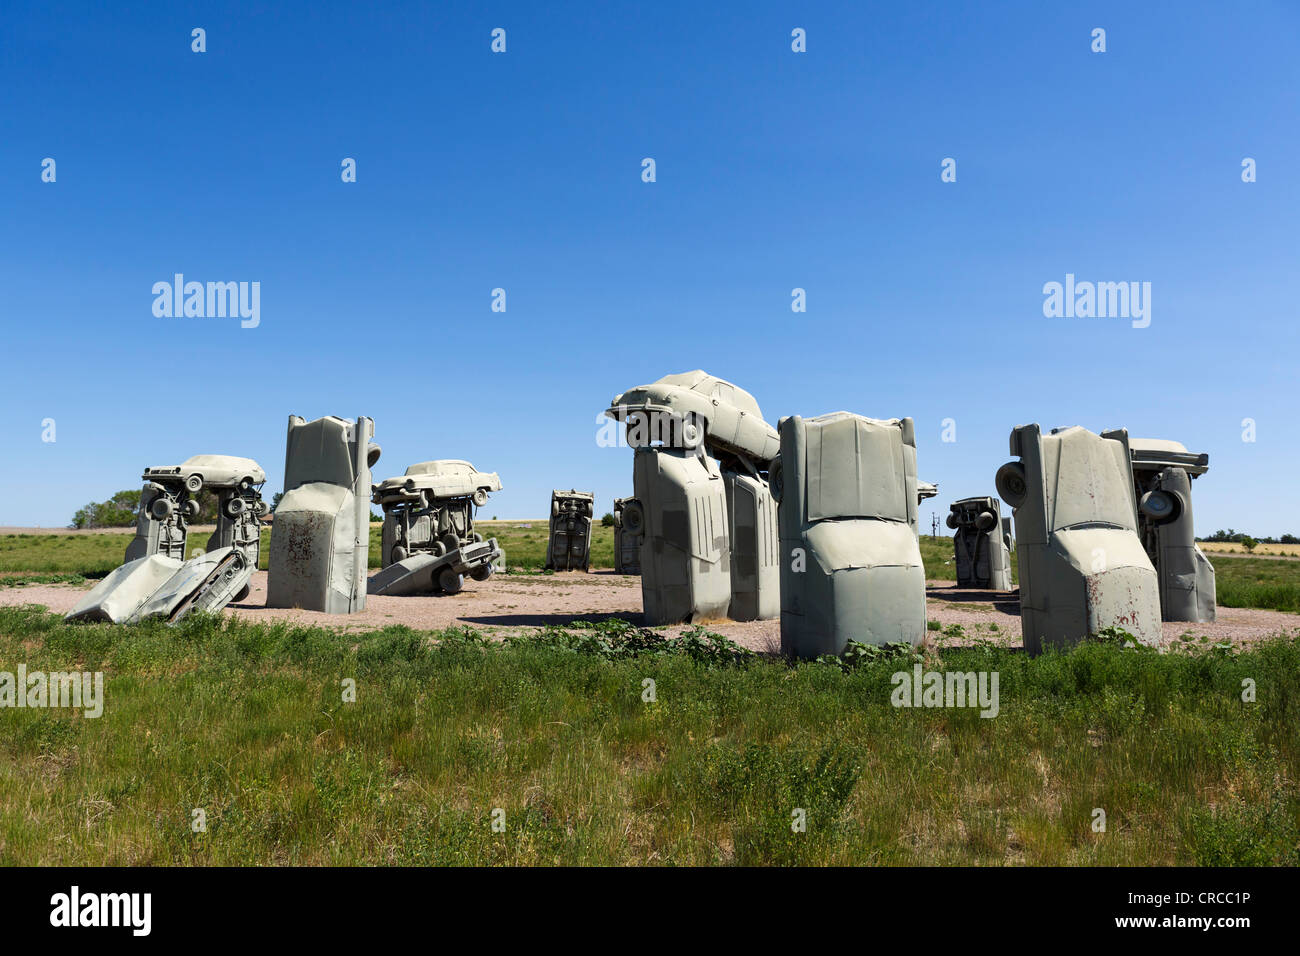 Carhenge, an artwork made from old scrapped cars, Alliance, Nebraska, USA - Stock Image